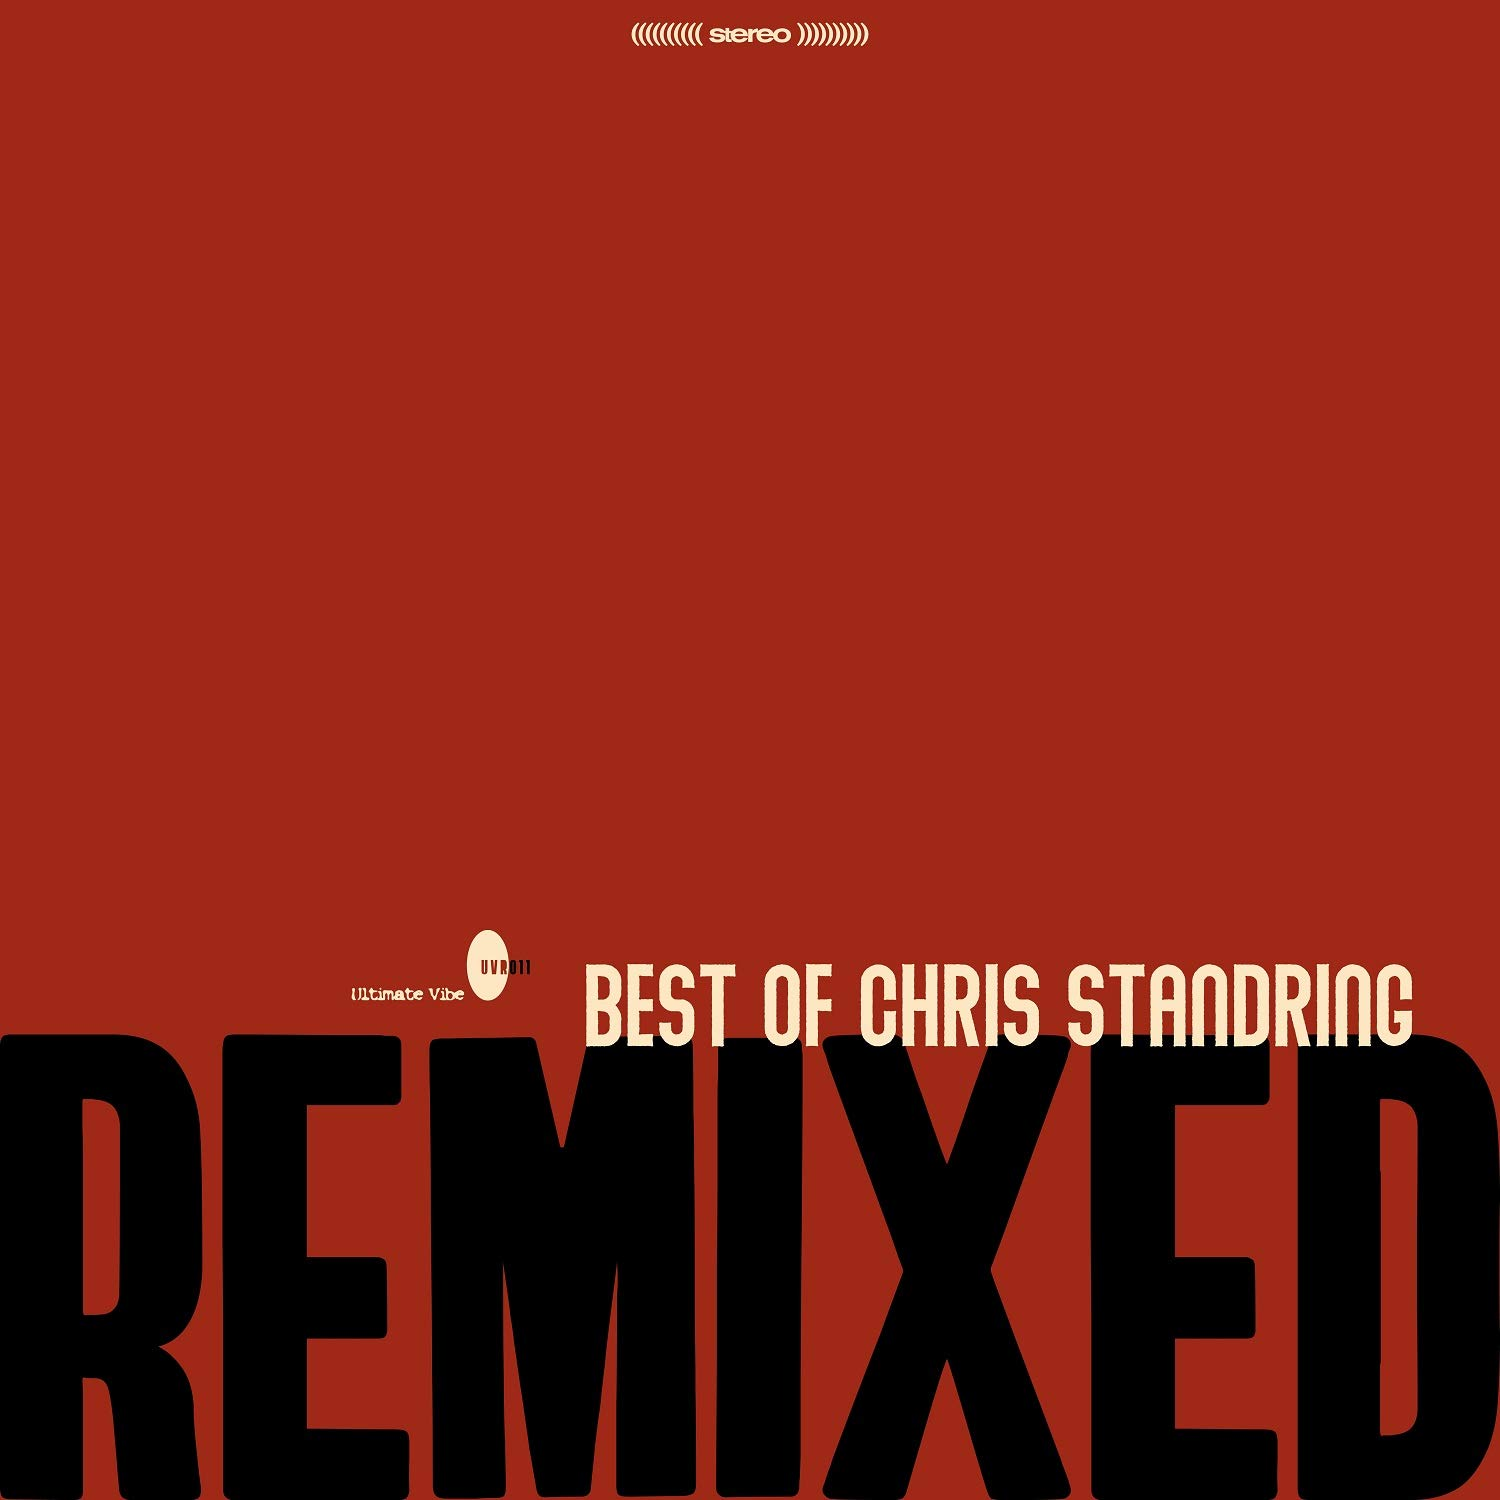 CHRIS STANDRING - Best Of Chris Standring - Remixed cover